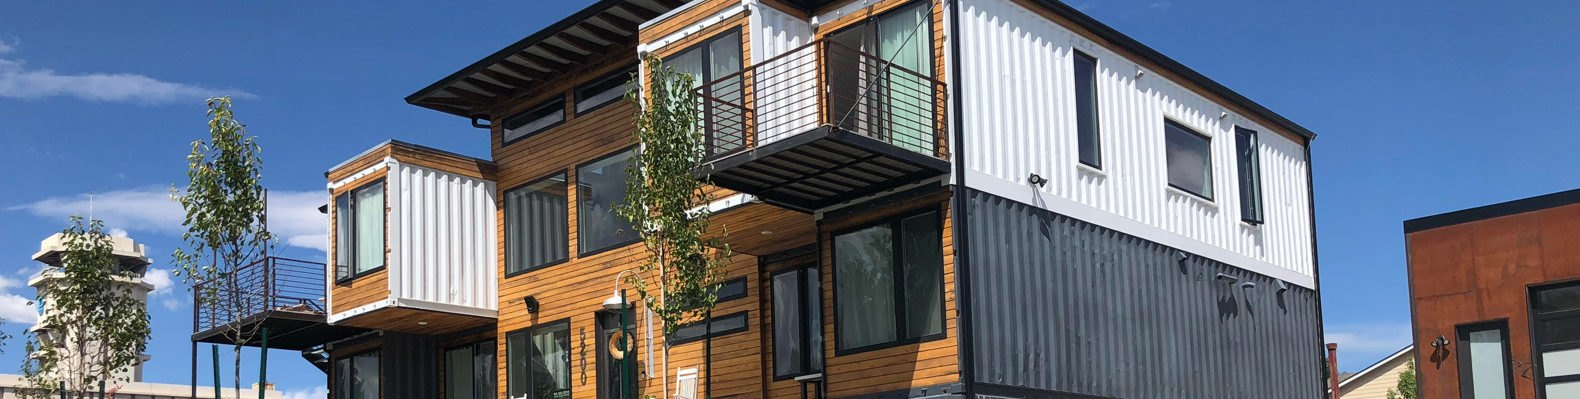 shipping container home painted white and black with wood paneling